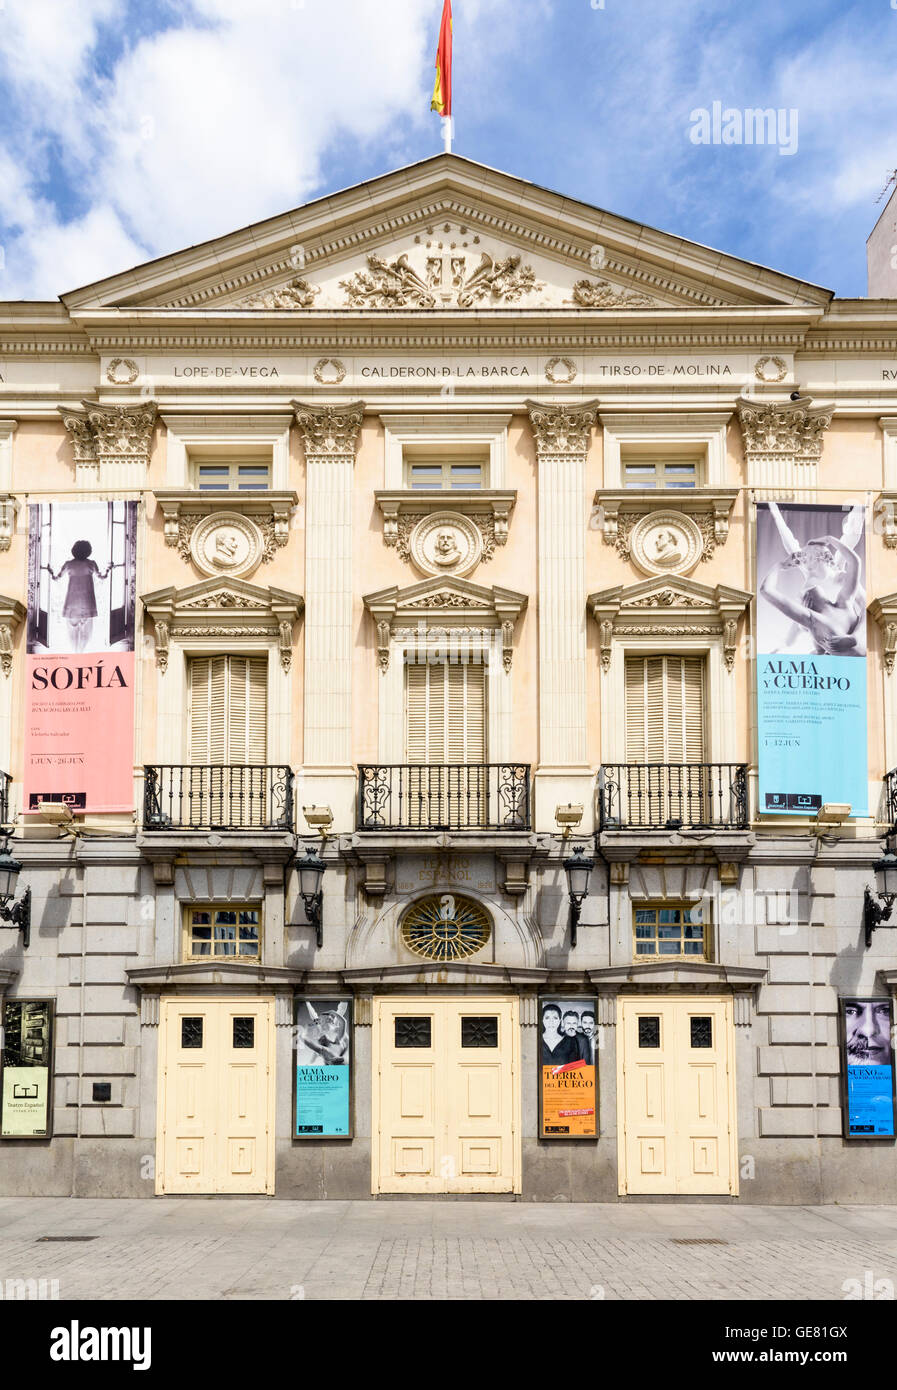 Facade of the neoclassical Espanol Theatre in Plaza Ana, Madrid, Spain - Stock Image